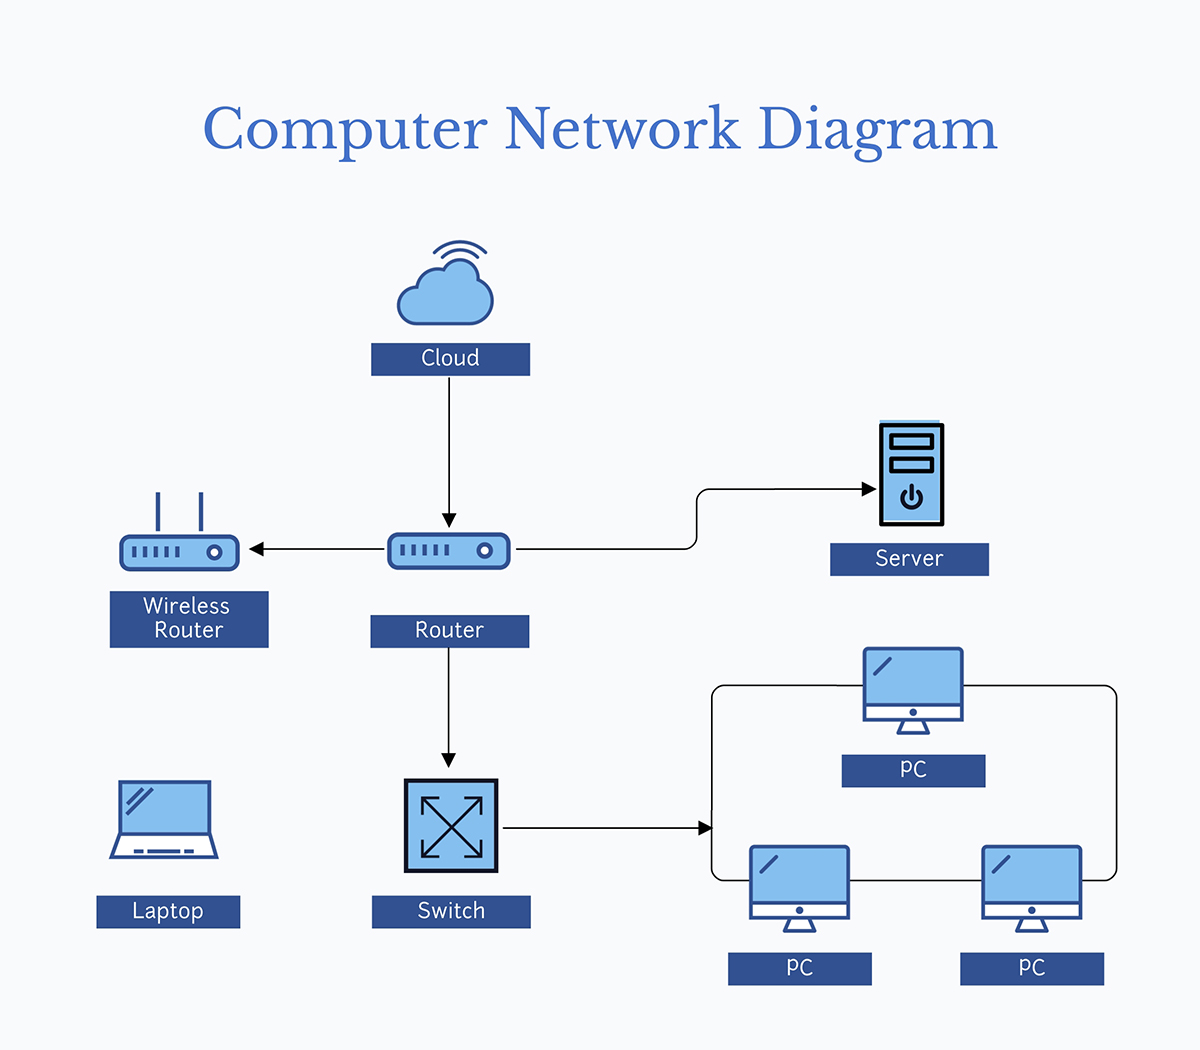 A computer network diagram template available in Visme.